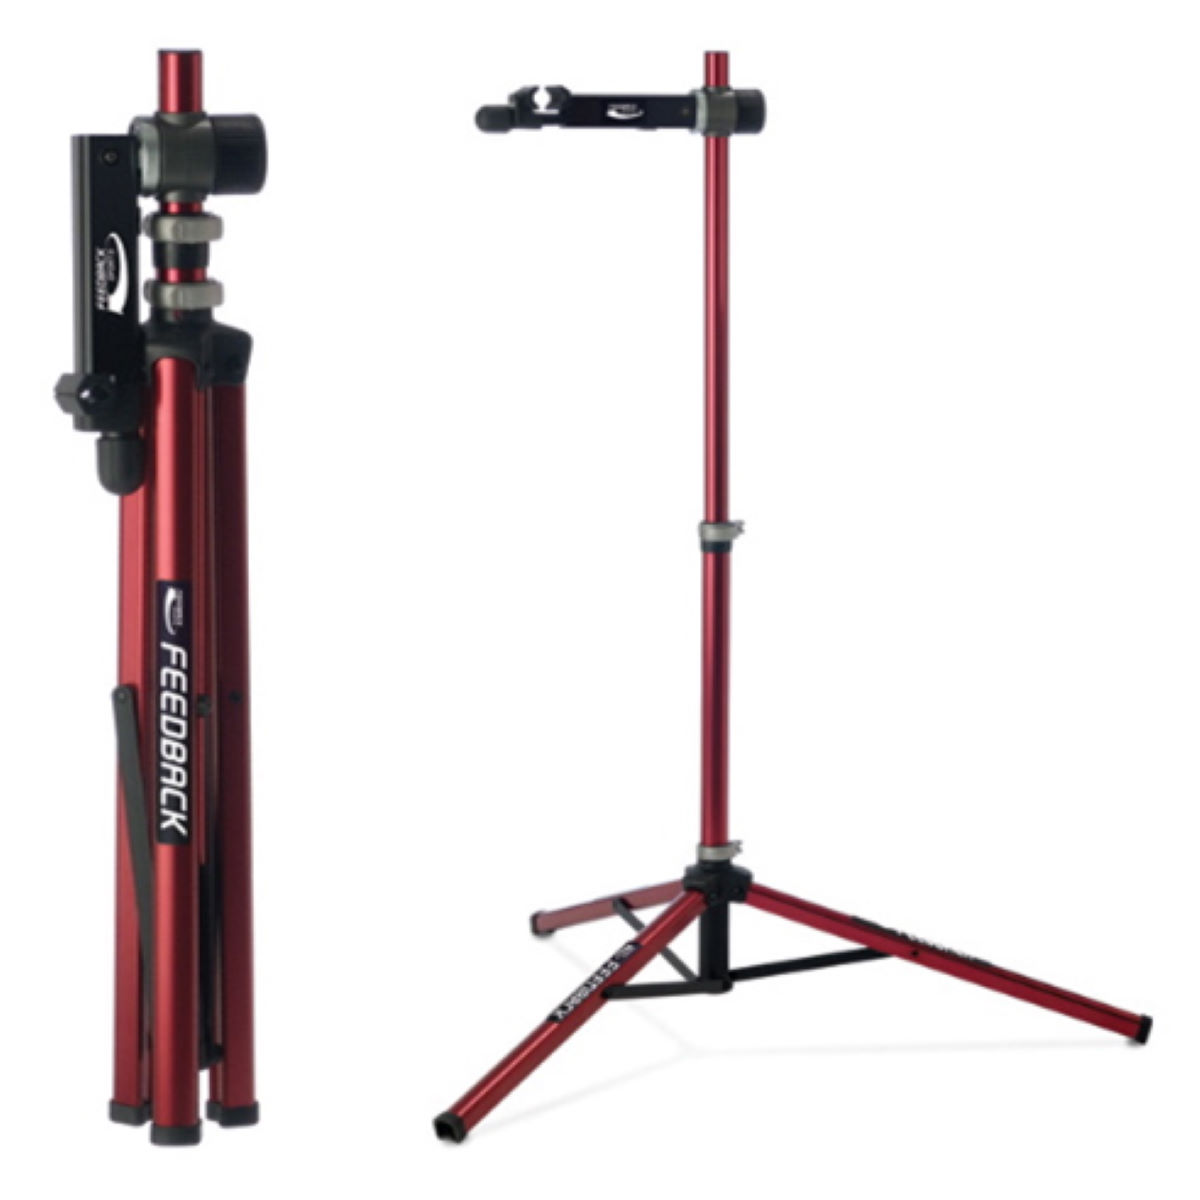 Feedback Sports Pro Ultralight Workstand - Caballetes de taller